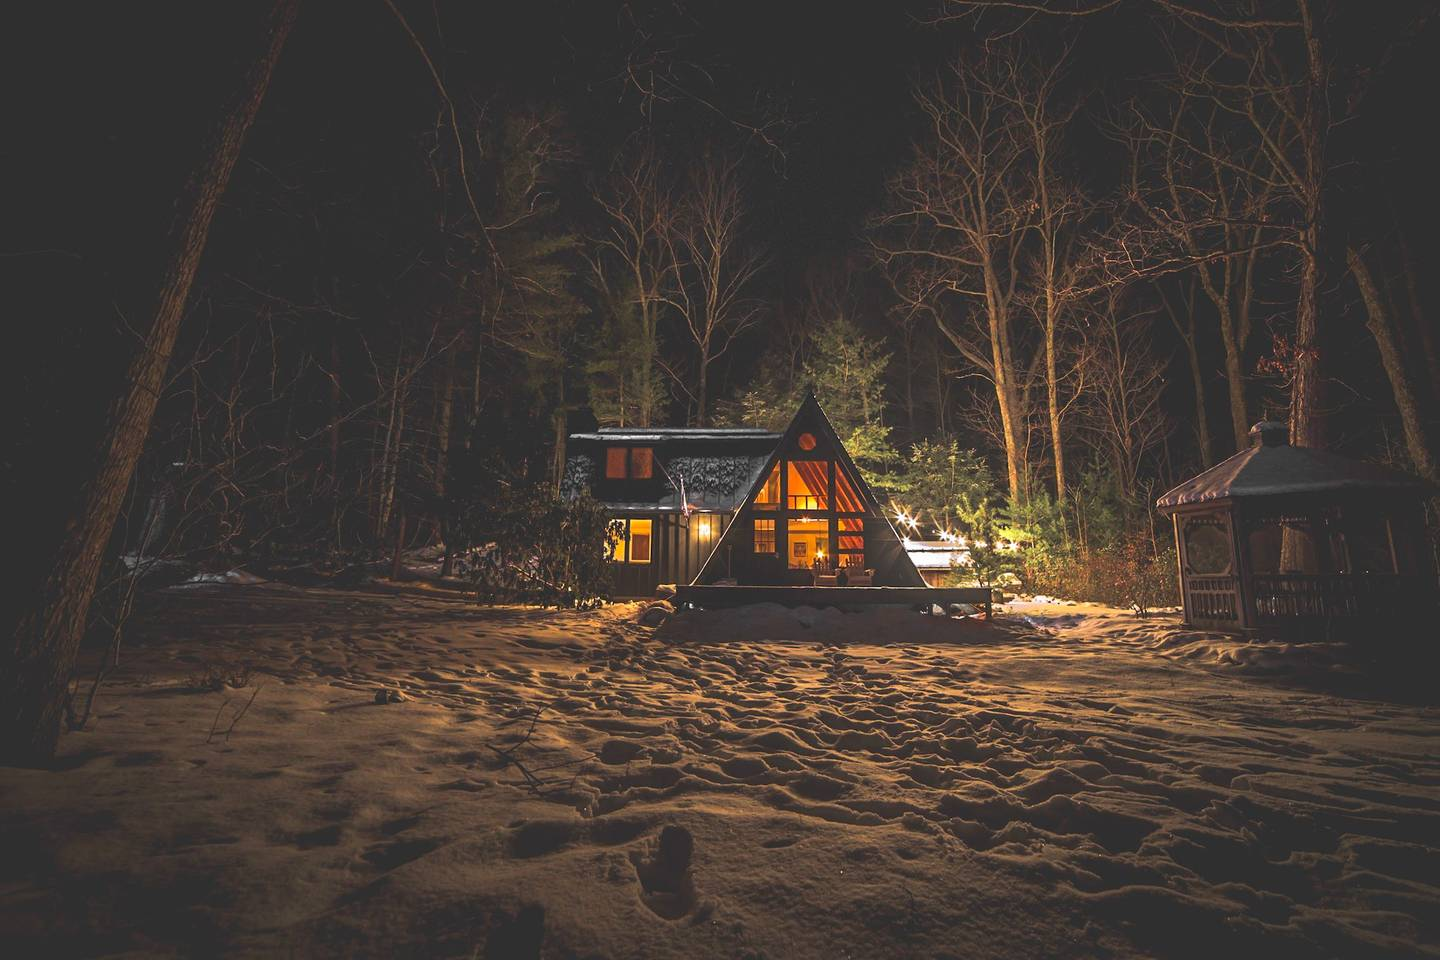 A Frame Cabins Are A Winter Camping Dream Come True